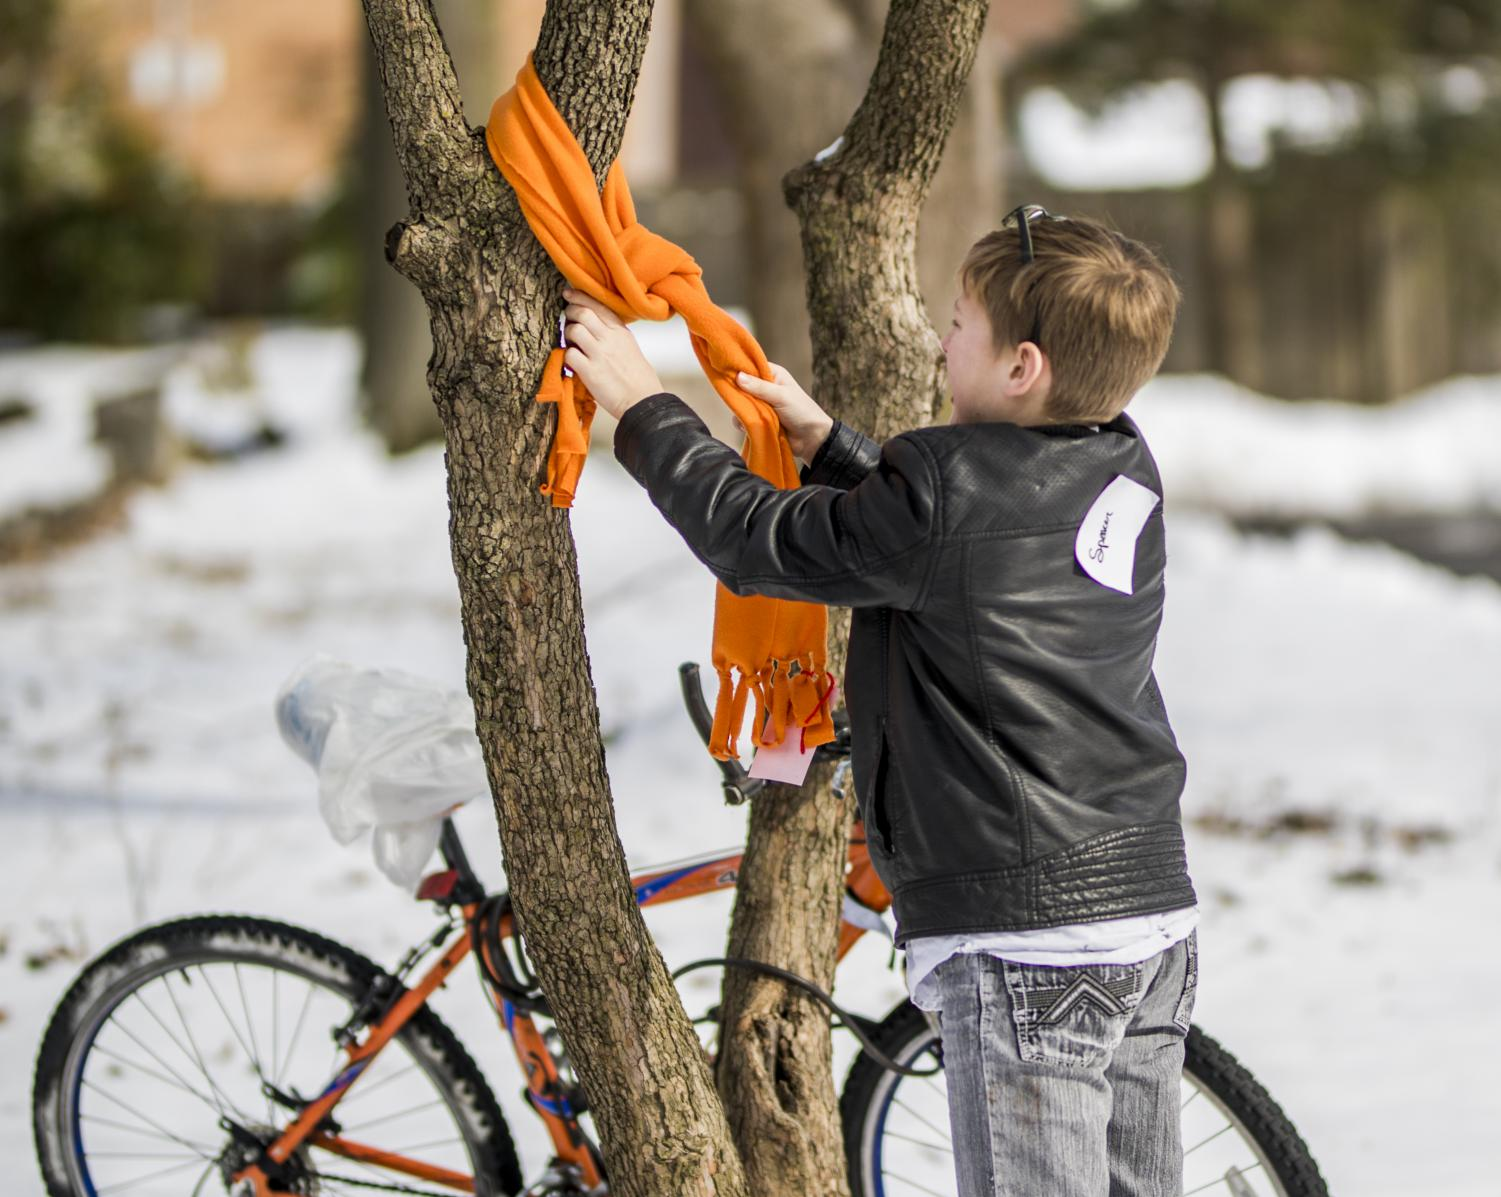 Ten-year-old Spencer Crotser, of Cambria, hangs a scarf on a tree, Saturday, Feb. 16, 2019, during the SIU Social Work Interns warming event at the Public Library.